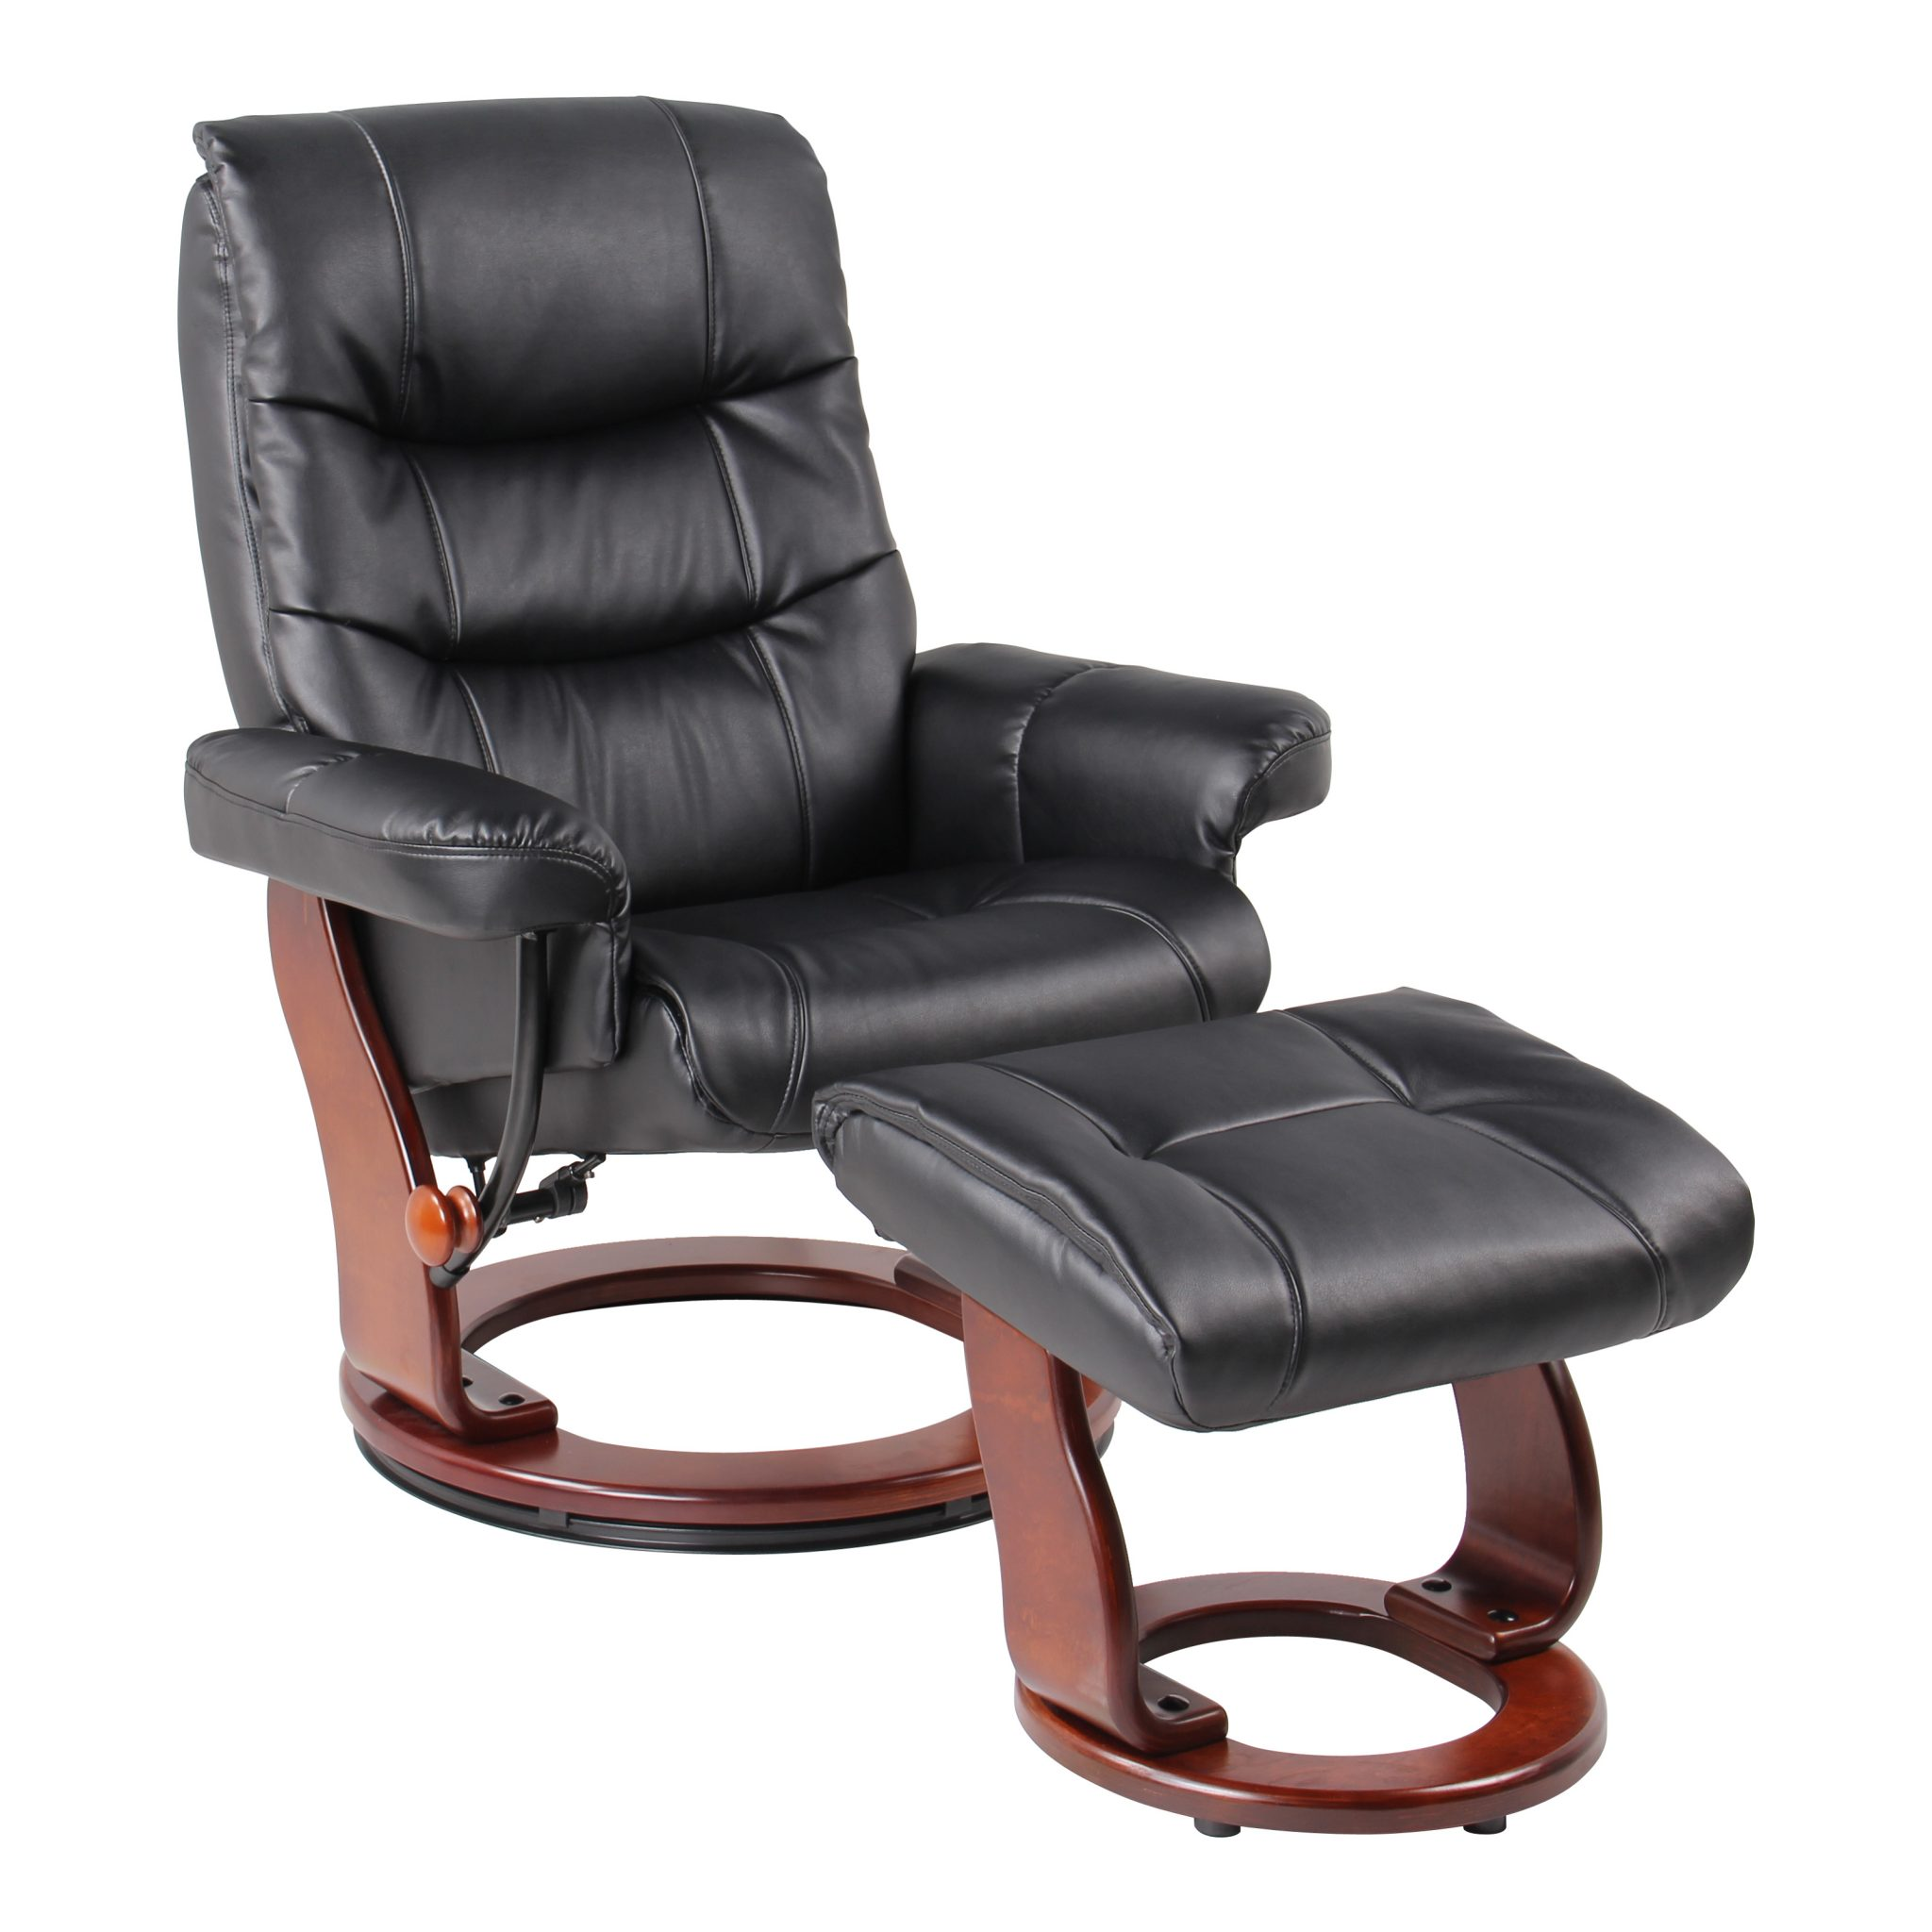 stress free chair cushioned dining chairs rosa zero gravity recliner with ottoman